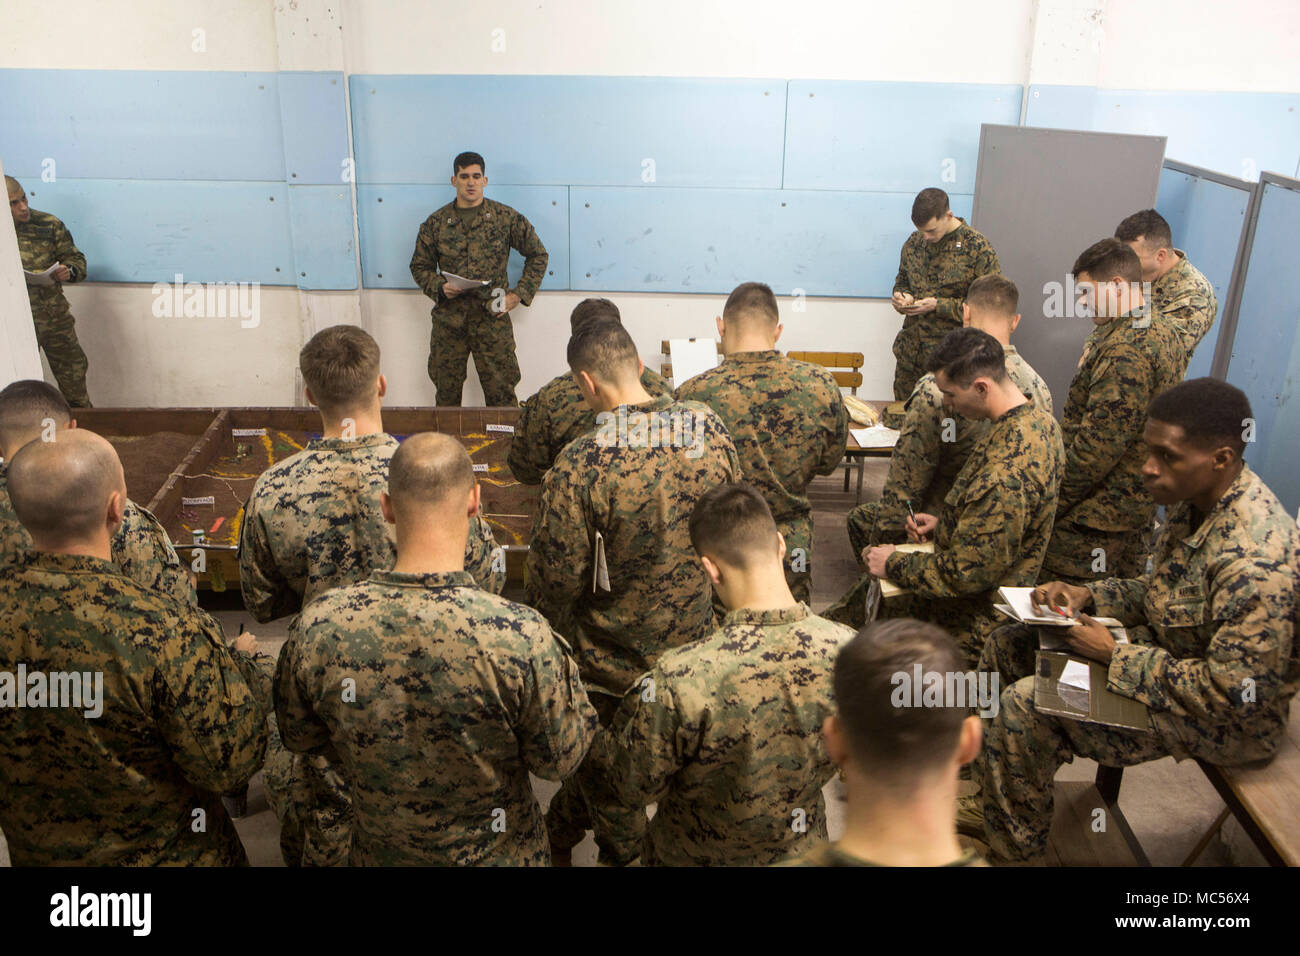 U.S. Marines with Black Sea Rotational Force 17.2 and Greek Marines with 32nd Marine Brigade use a terrain model to plan for a force-on-force attack in Volos, Greece Jan. 16, 2018. During the exercise Alpha and Bravo companies will conduct combined company-level tactical operations to seize the battalion objective. Stock Photo